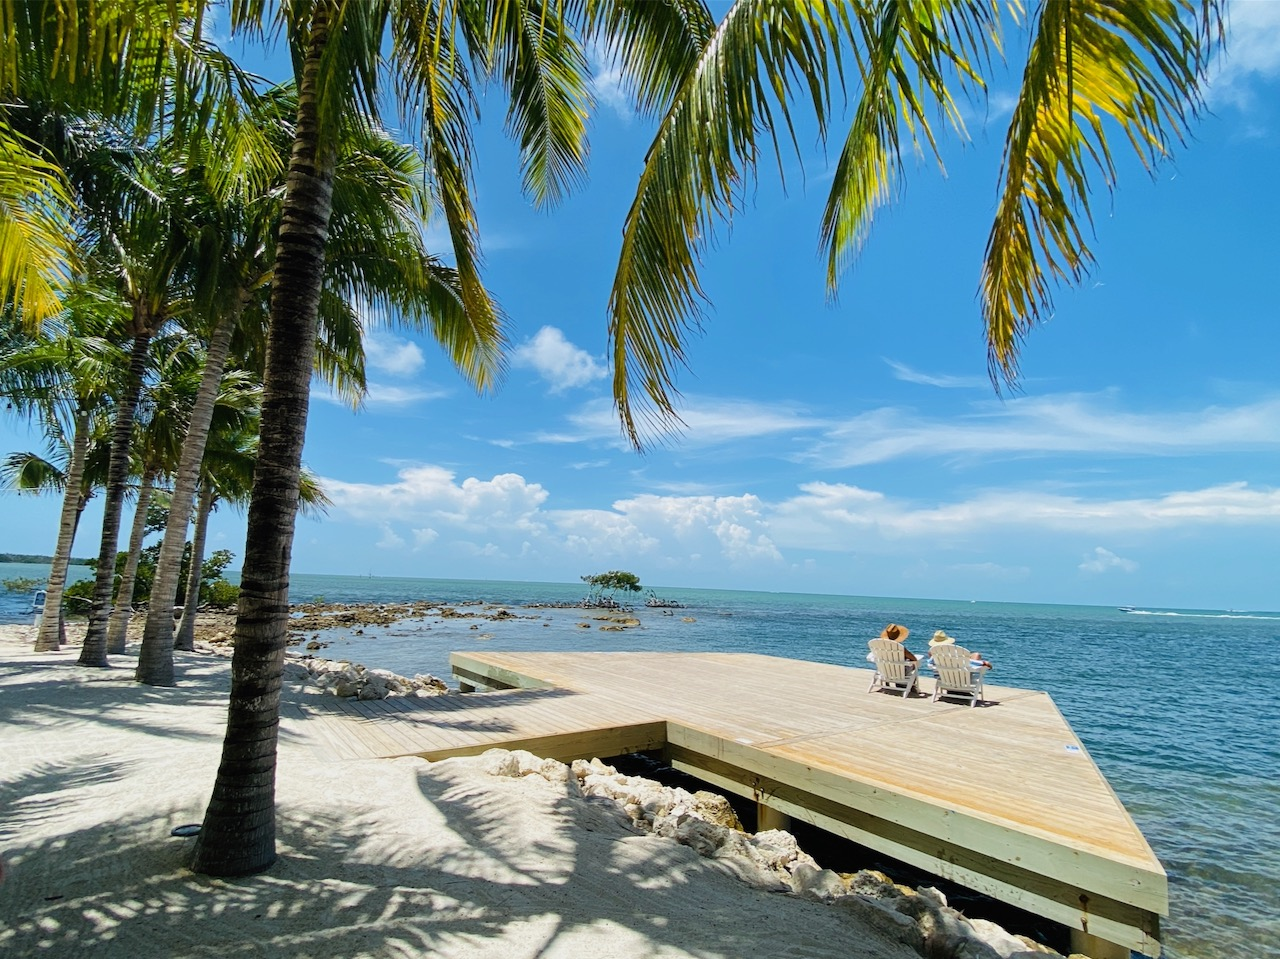 Key West and The Florida Keys Vacation Guide